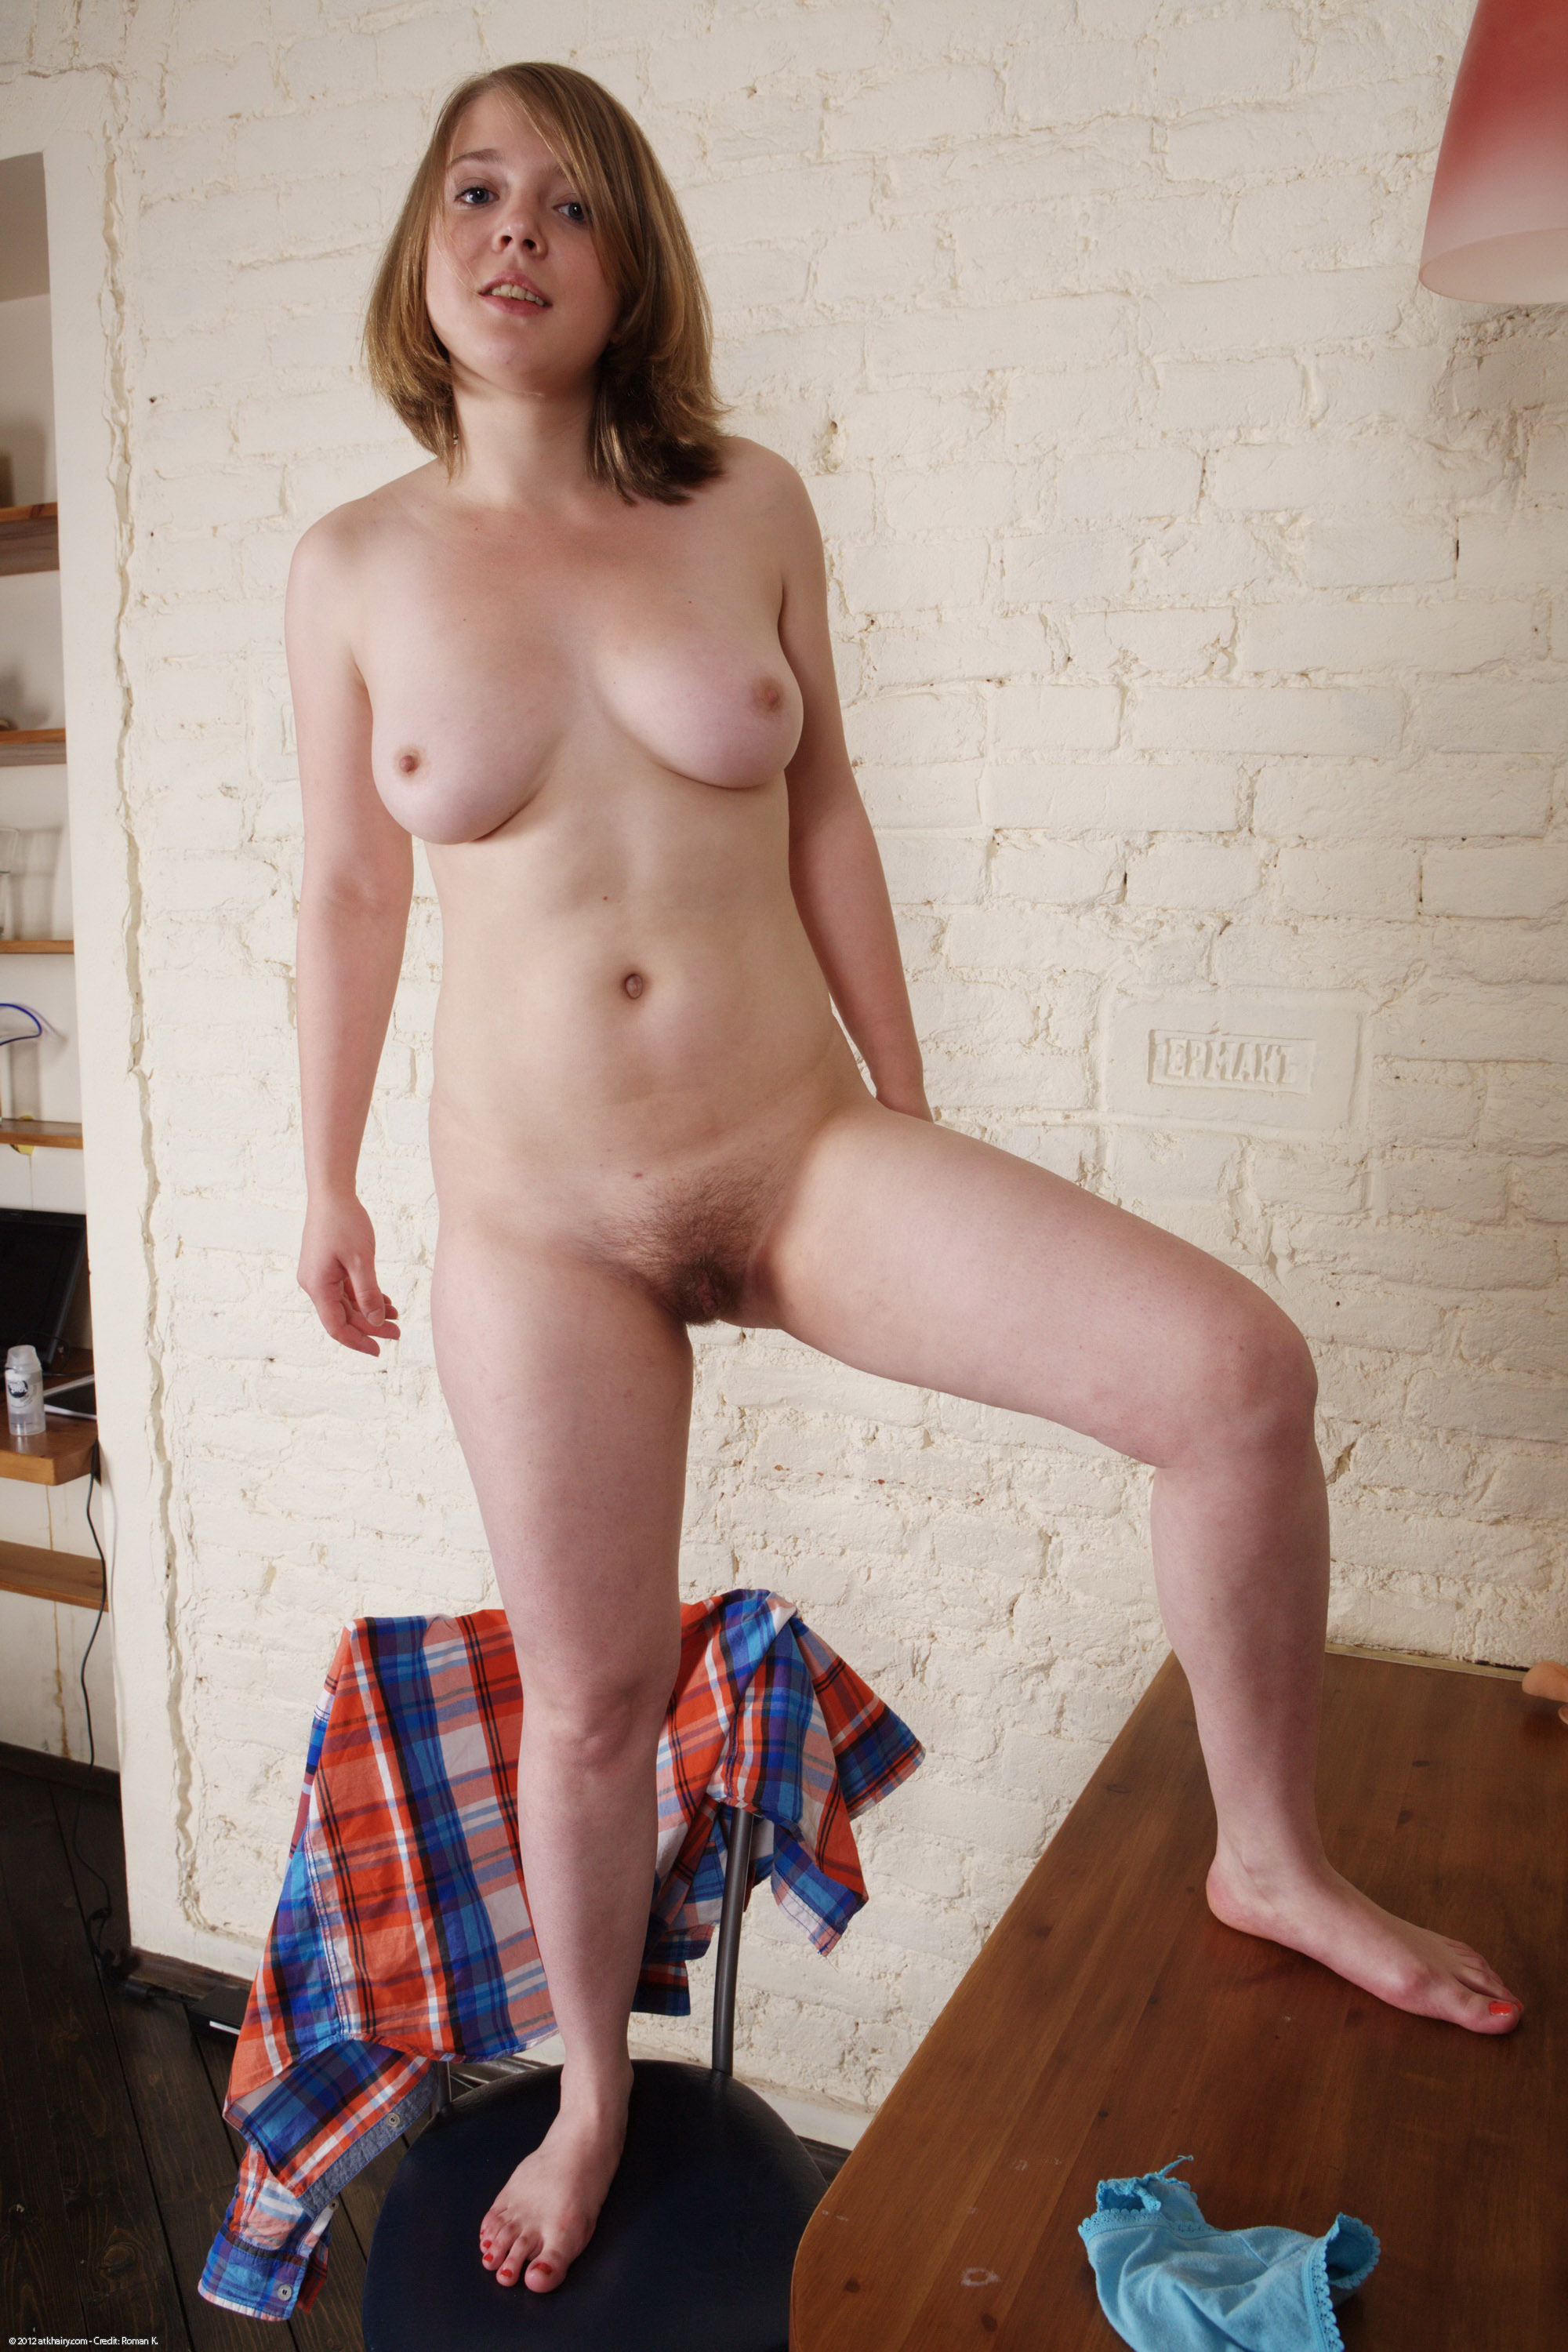 peachyforum t alice-atk-hairy-oriel-behairy-400337 aspx